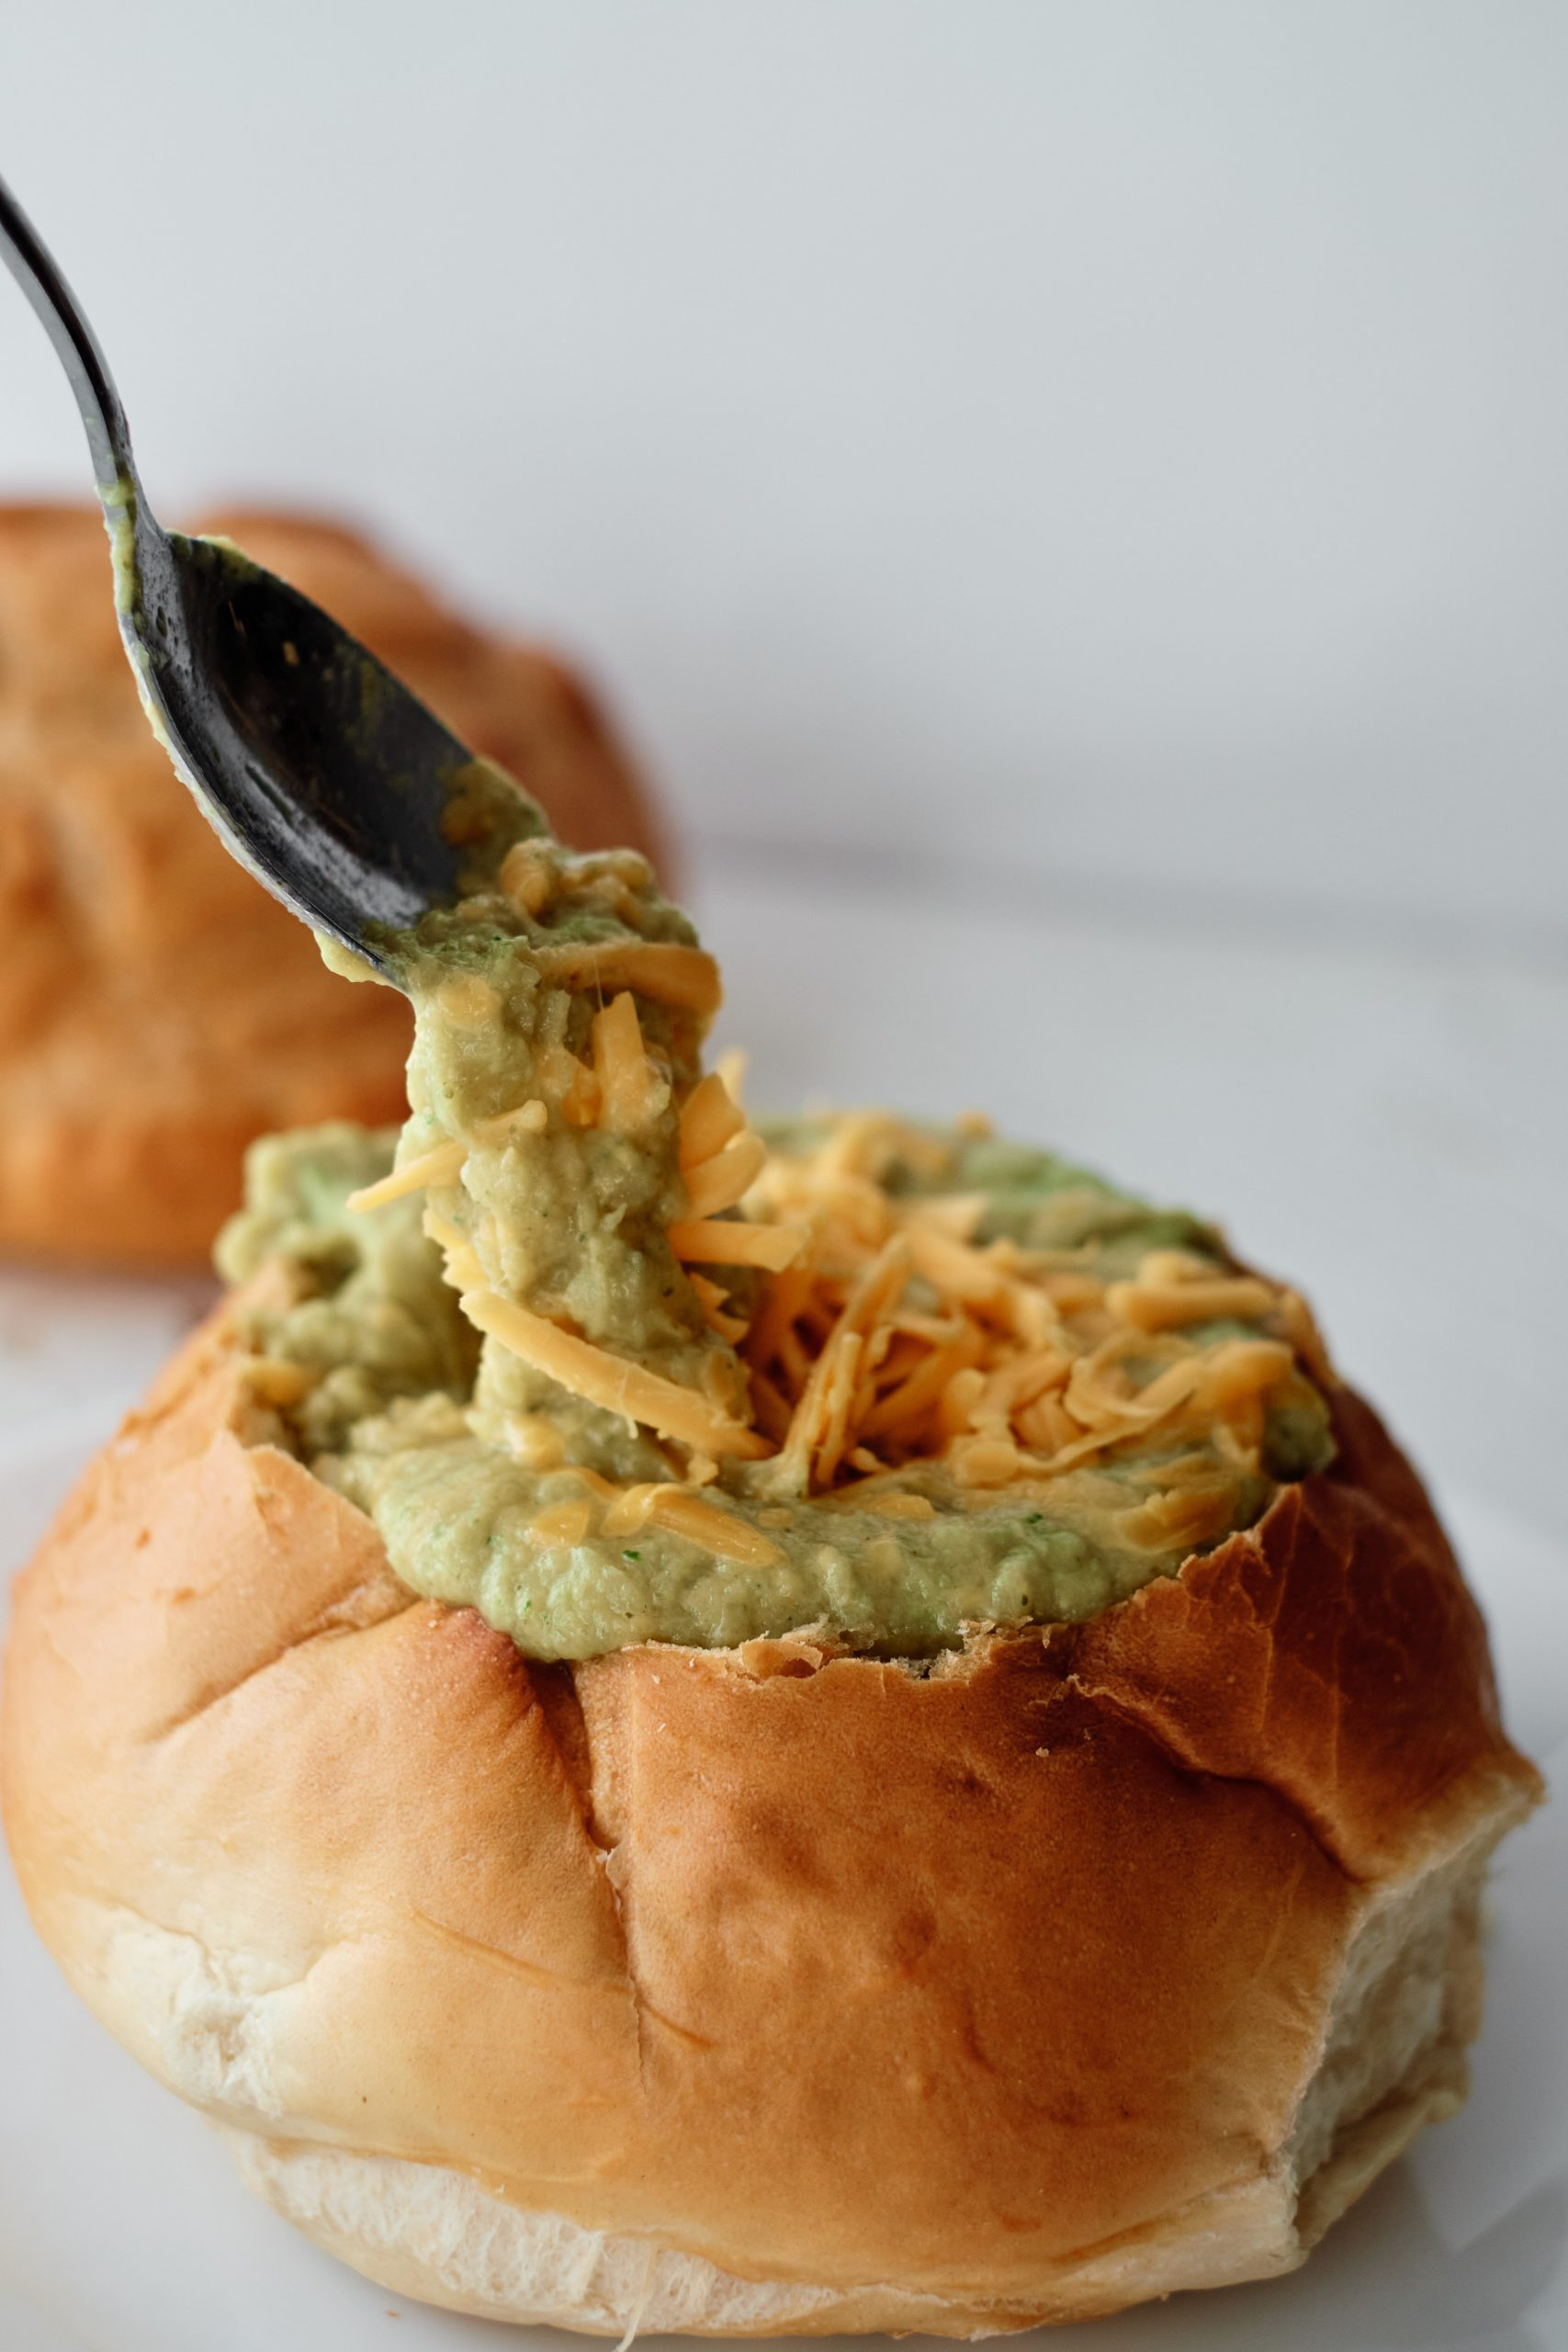 A bread bowl filled with soup, topped with shredded cheddar cheese, with a silver spoon picking up a scoop